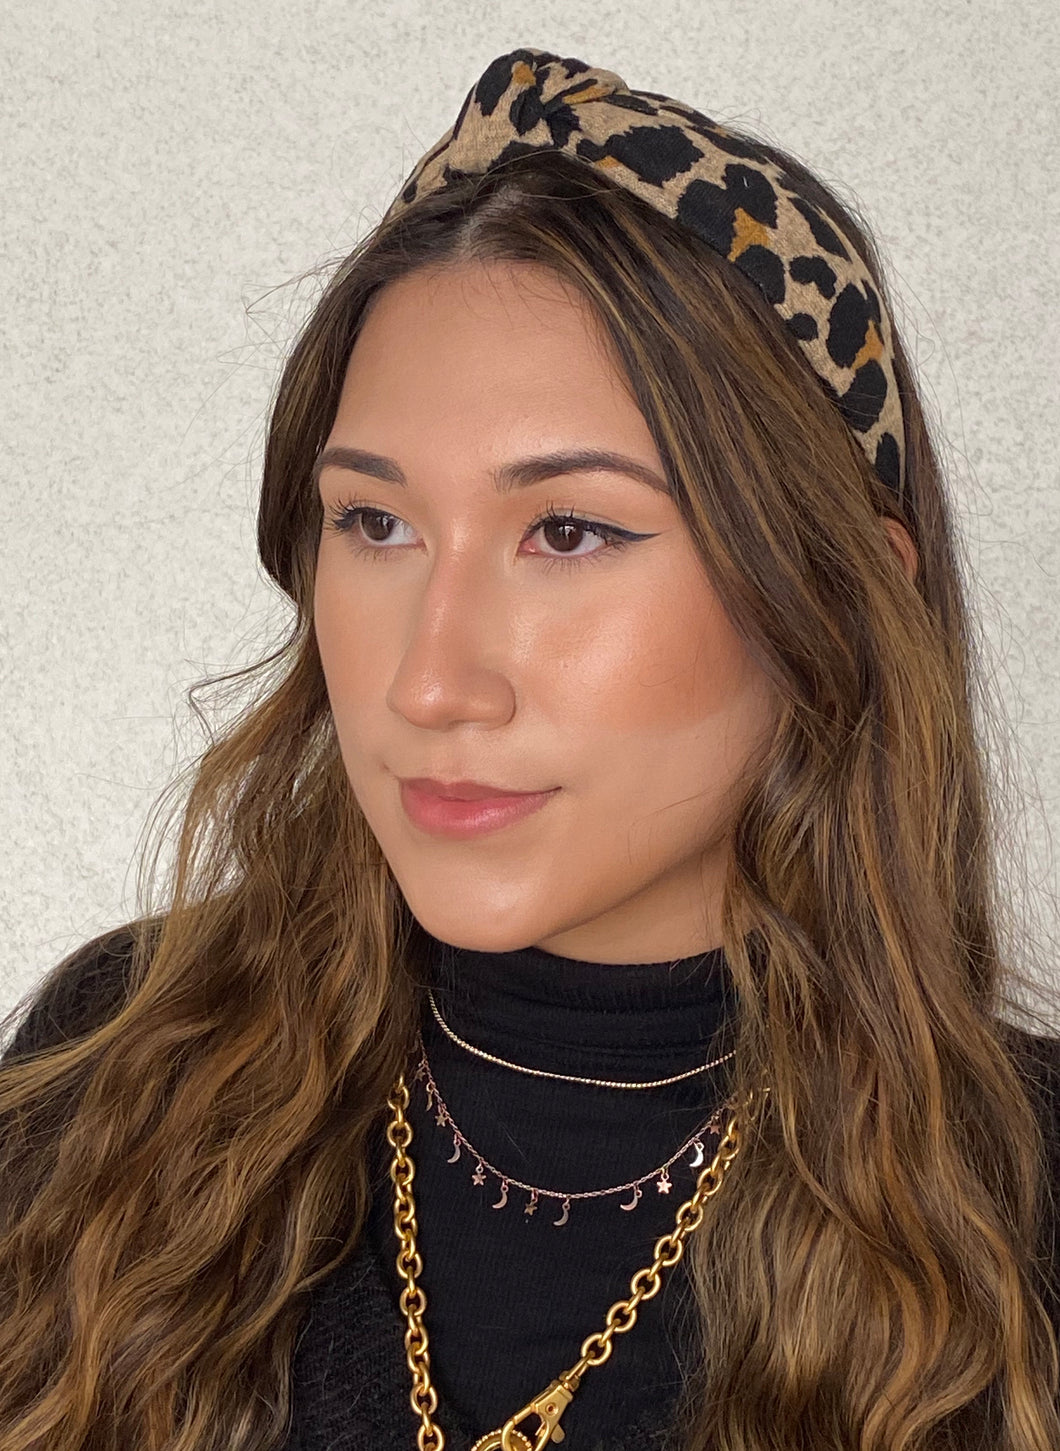 The Kate Leopard Jersey Knotted Headband